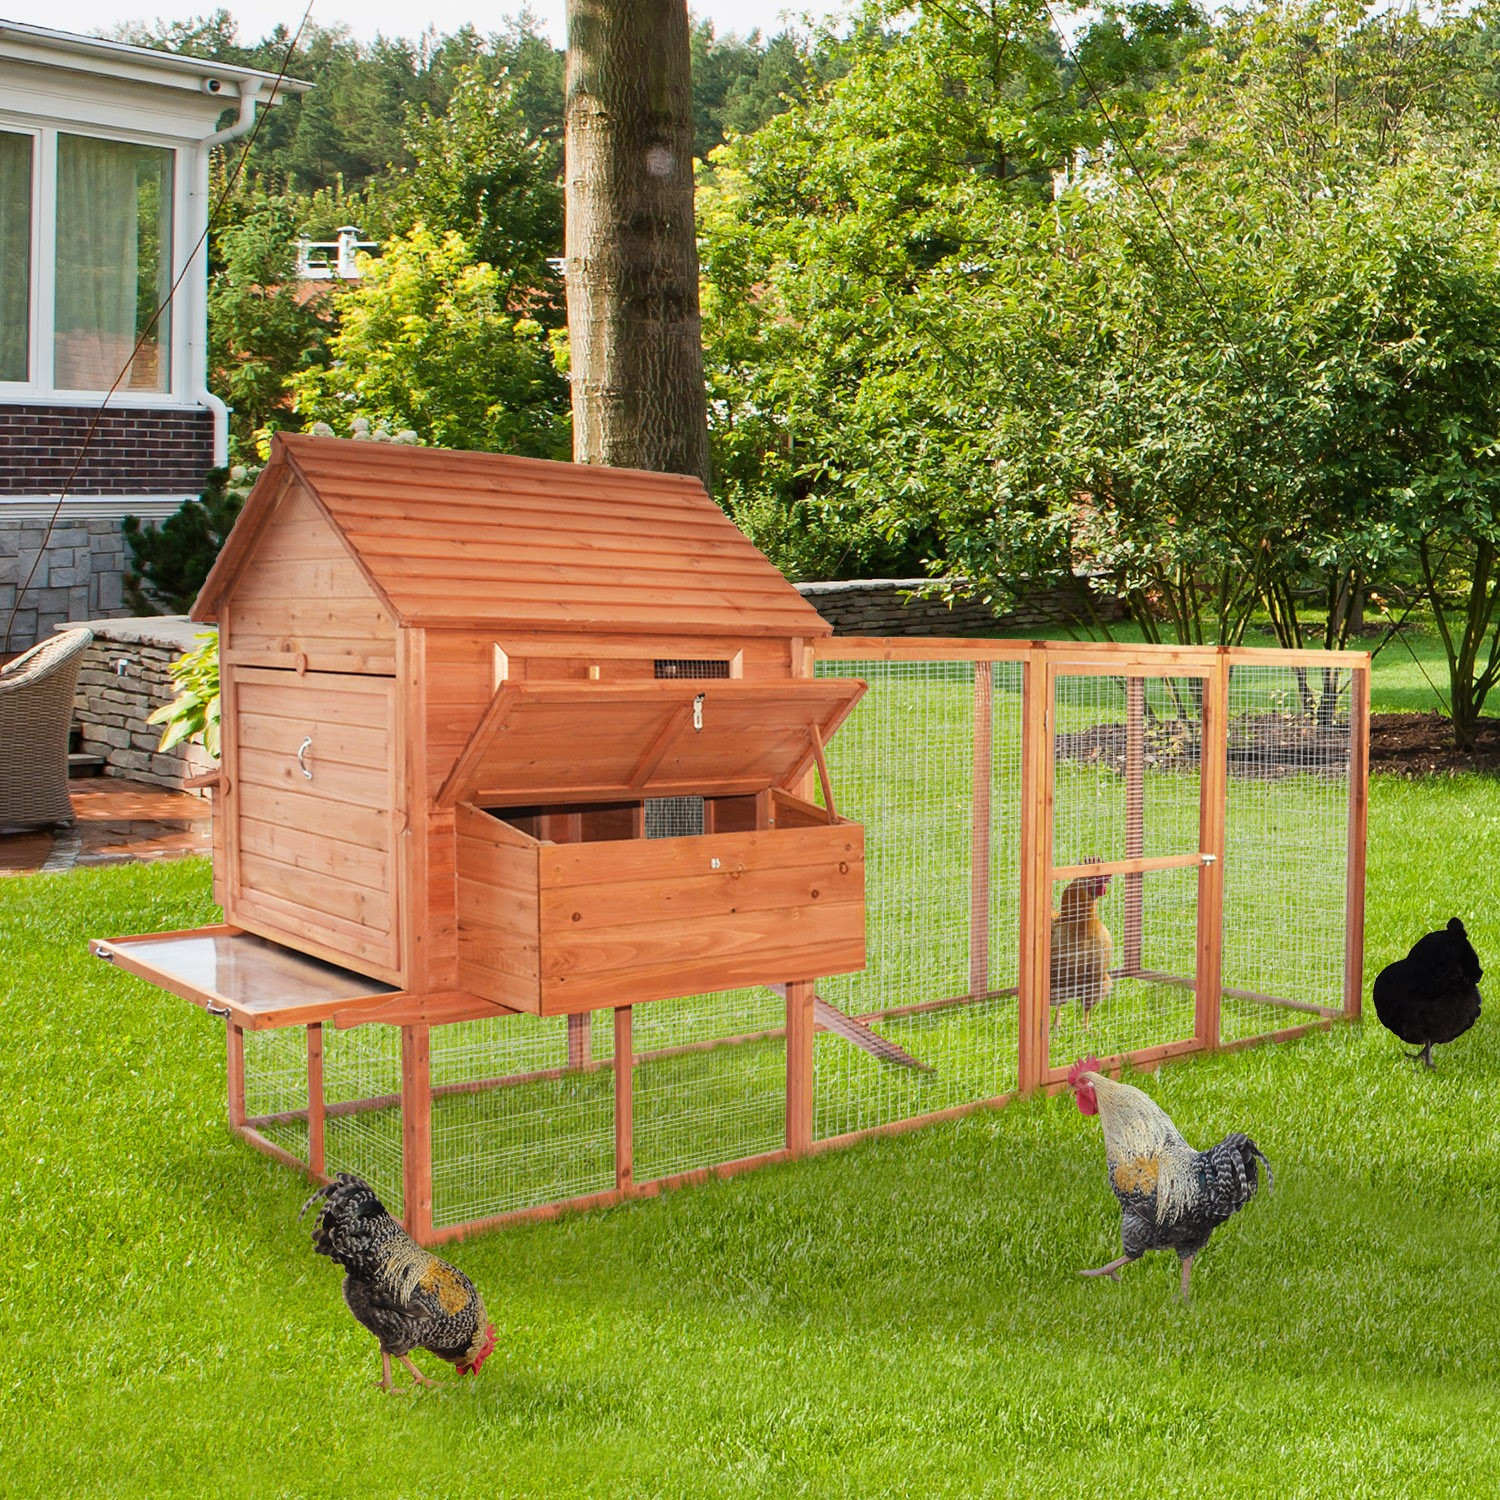 Best ideas about Backyard Chicken Coop . Save or Pin Pawhut Backyard Chicken Coop w Long Run Now.